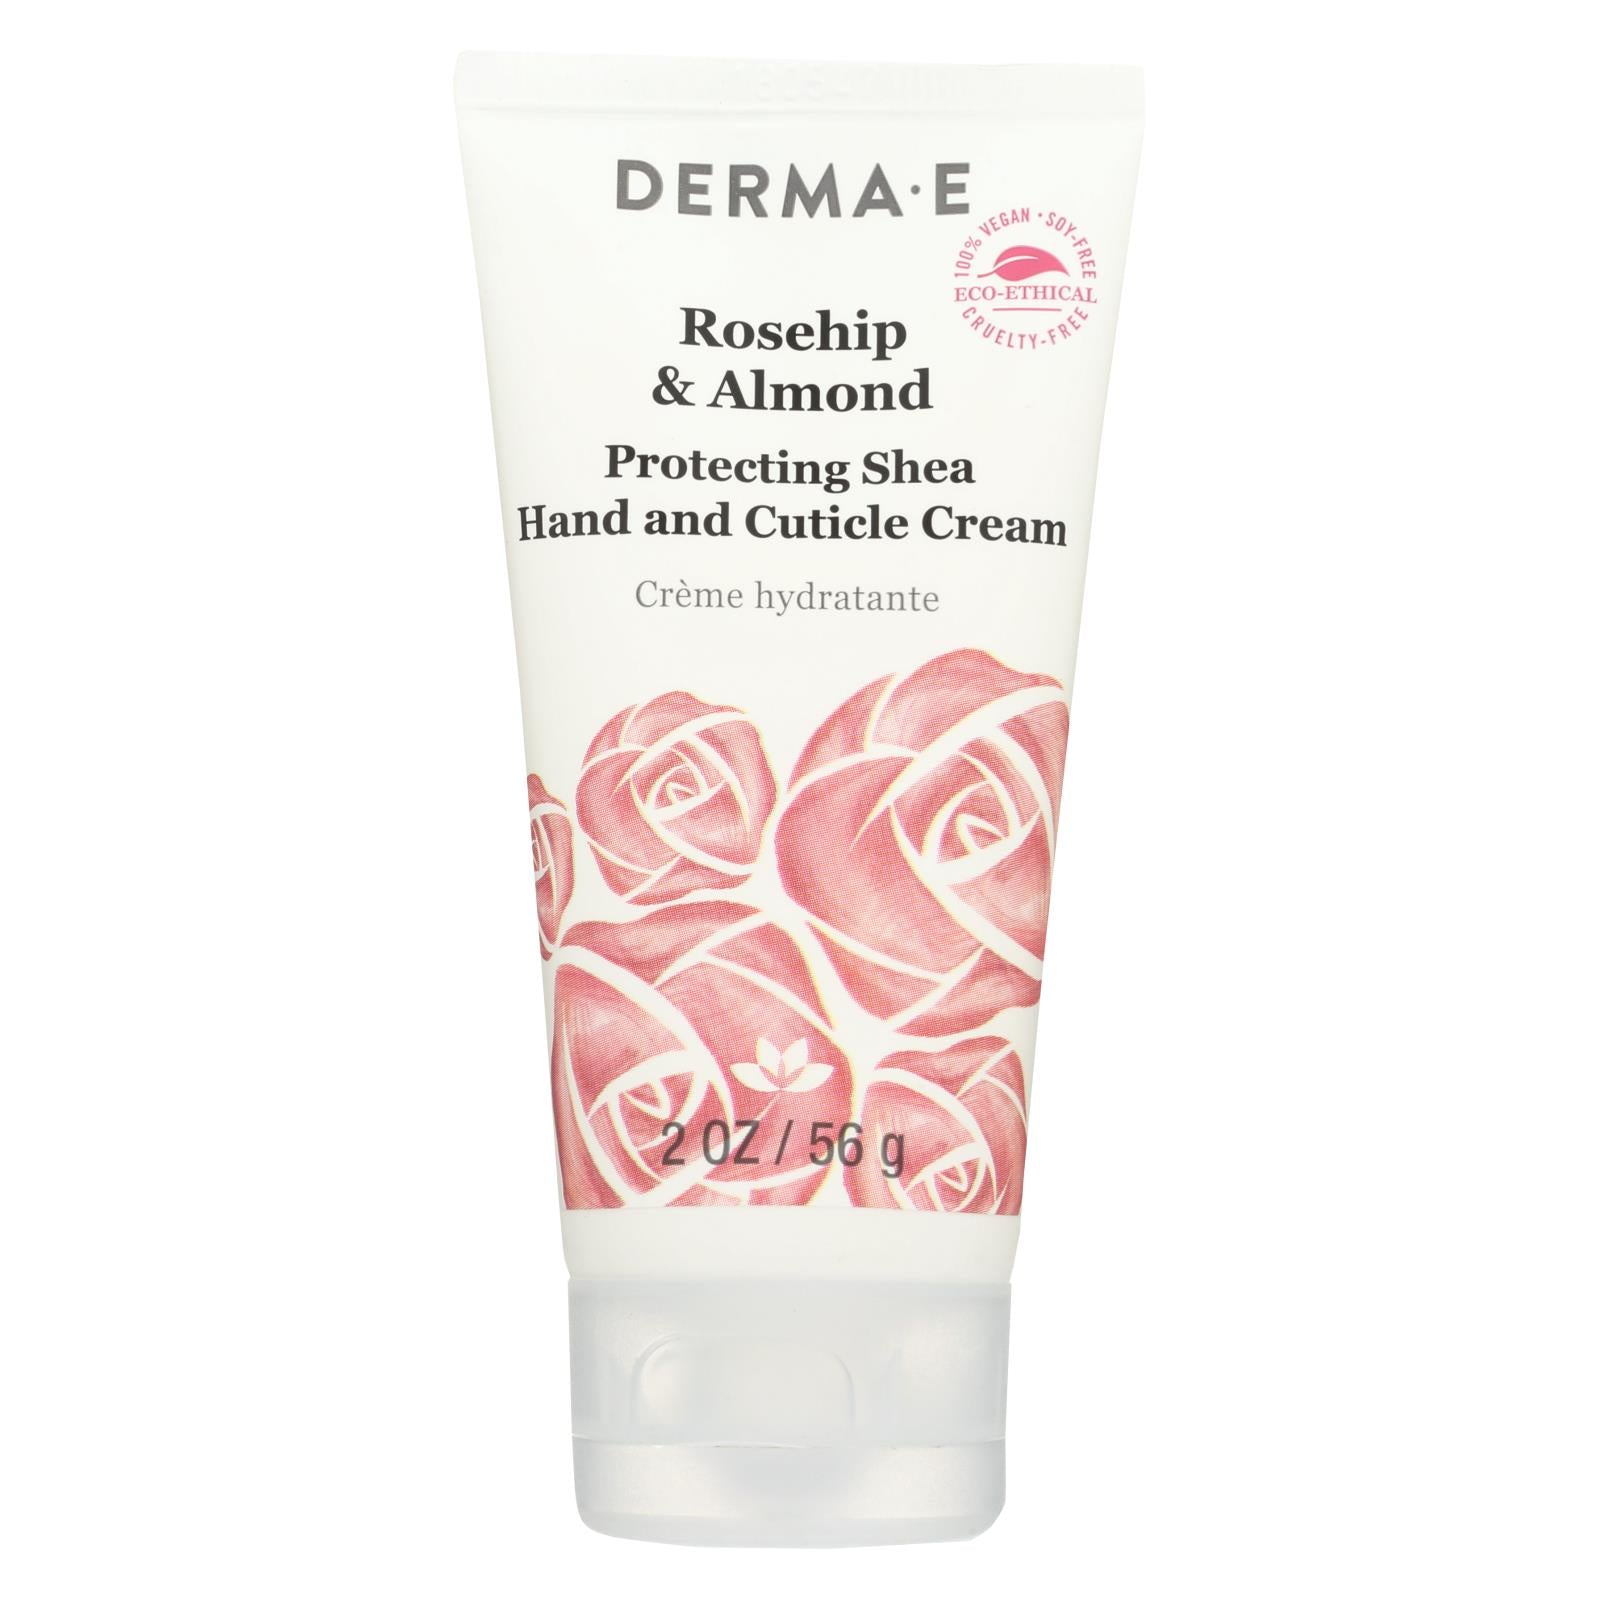 Buy Derma E Lotion - Hand Cream - Case of 1 - 2 oz. - Hand and Body Lotion from Veroeco.com